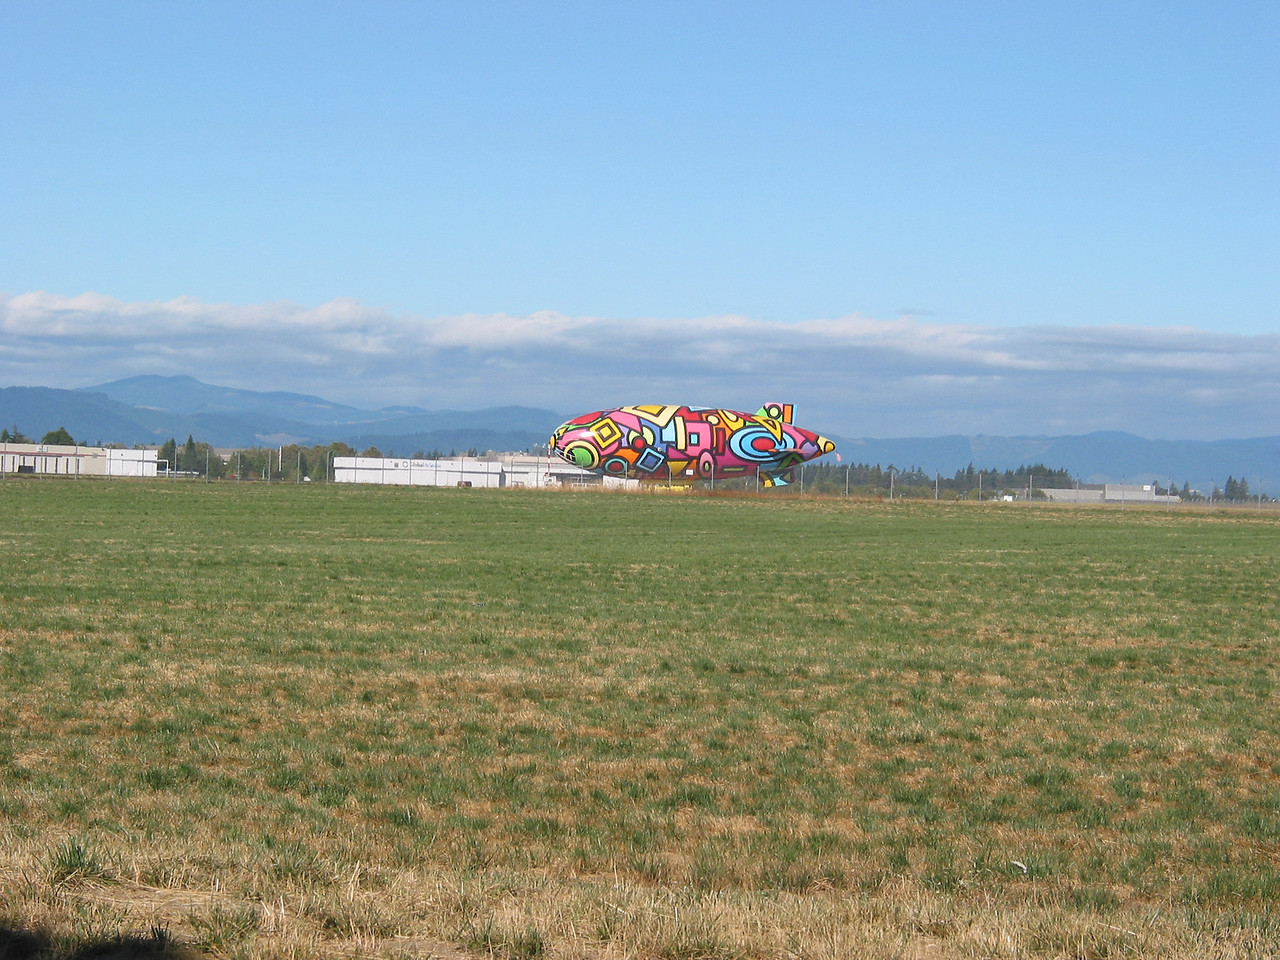 On the way out of town I saw an interesting blimp at the Hillsboro Airport.